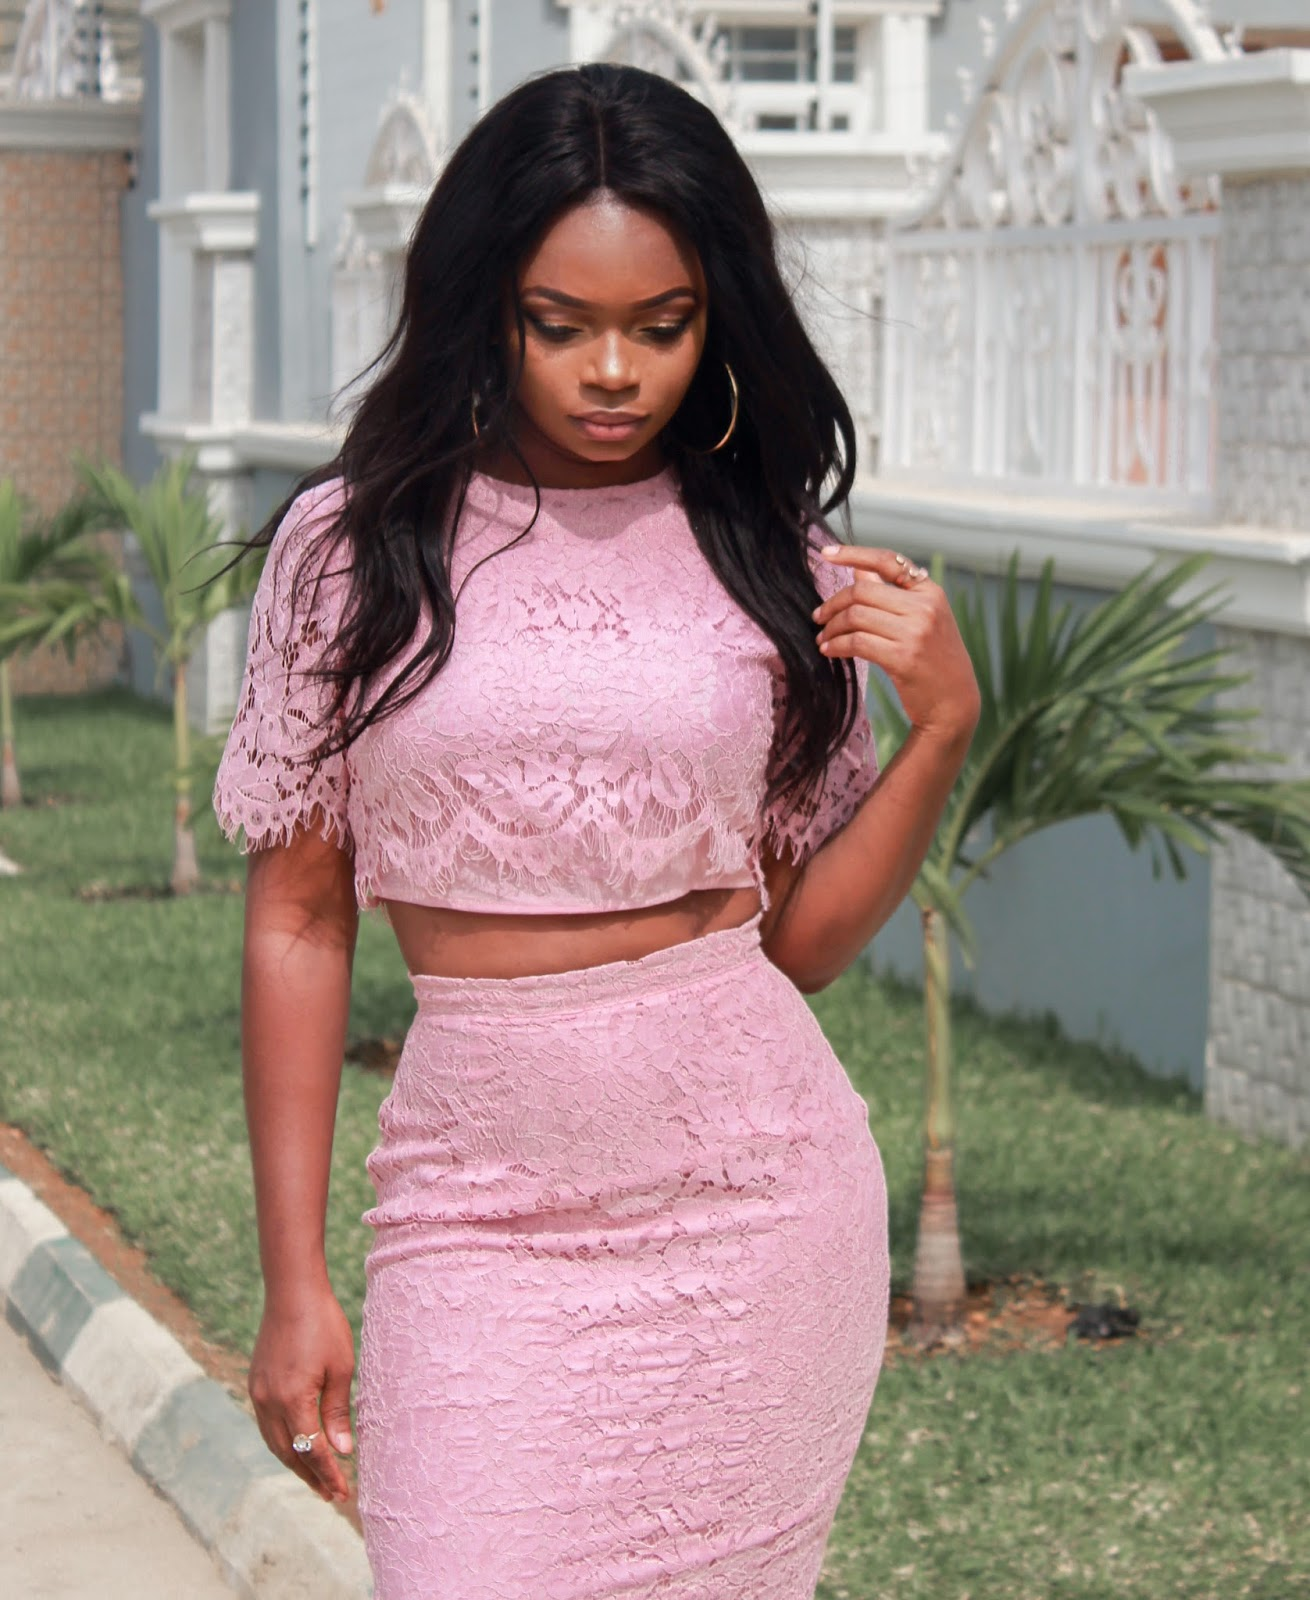 OPEN MIDRIFF LACE DRESS - Valentine's Day LookBook - Outfit Inspiration. Shein Pink Open Midriff Lace Dress with Boohoo court shoes